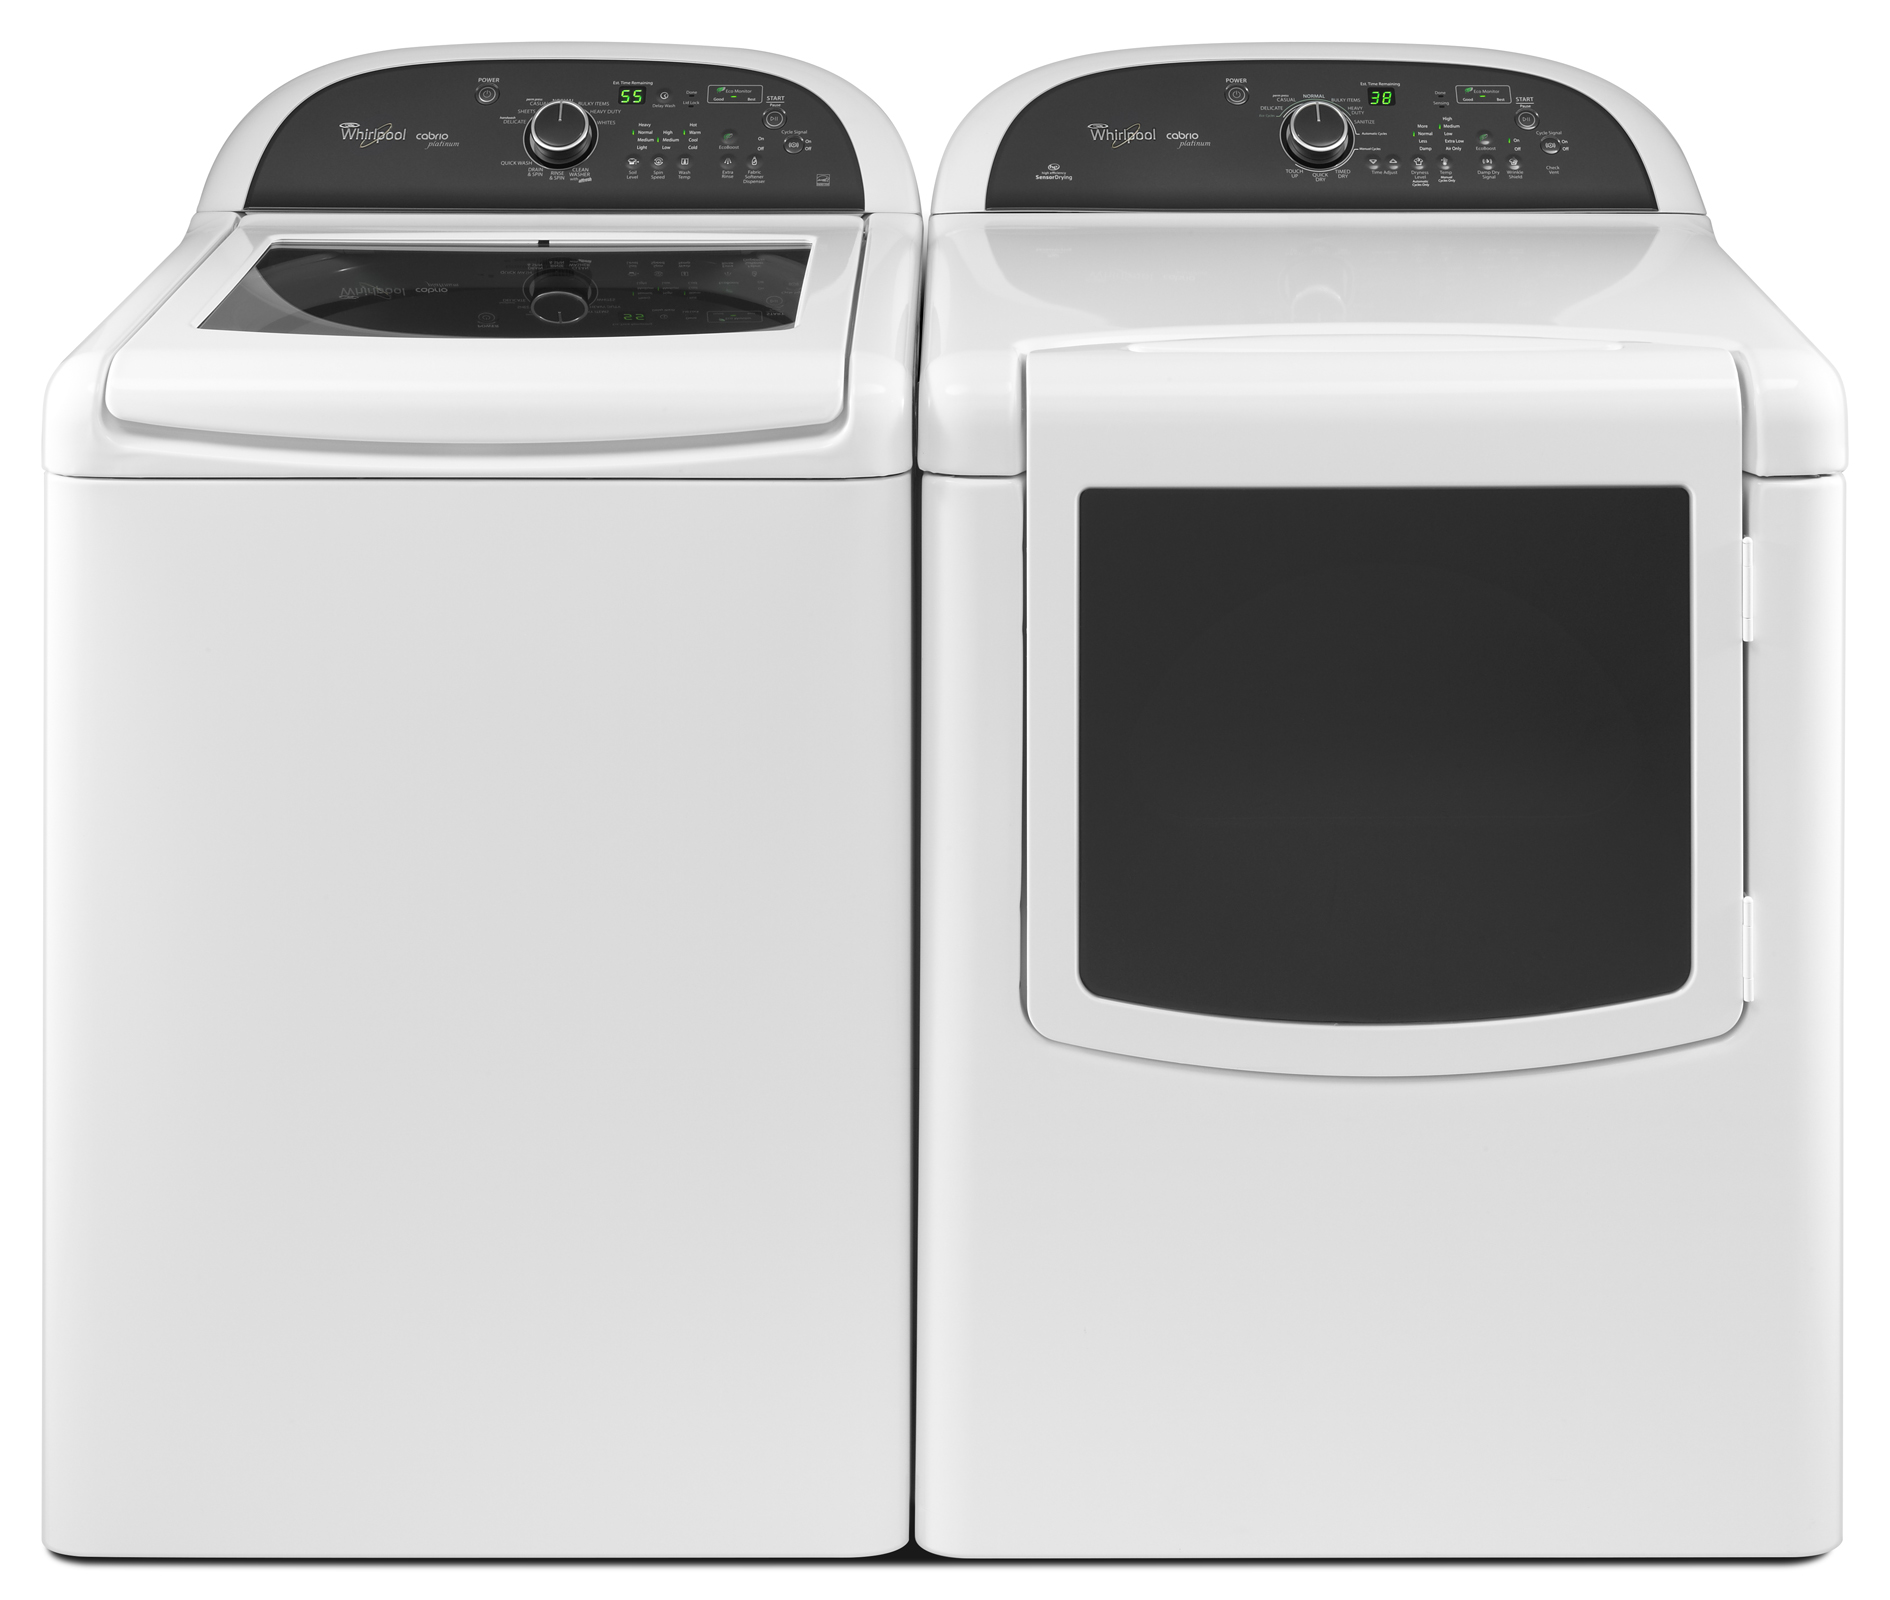 Whirlpool 4.5 cu. ft. Cabrio® Platinum HE Top-Load Washer w/ EasyView™ Framed Glass Lid - White